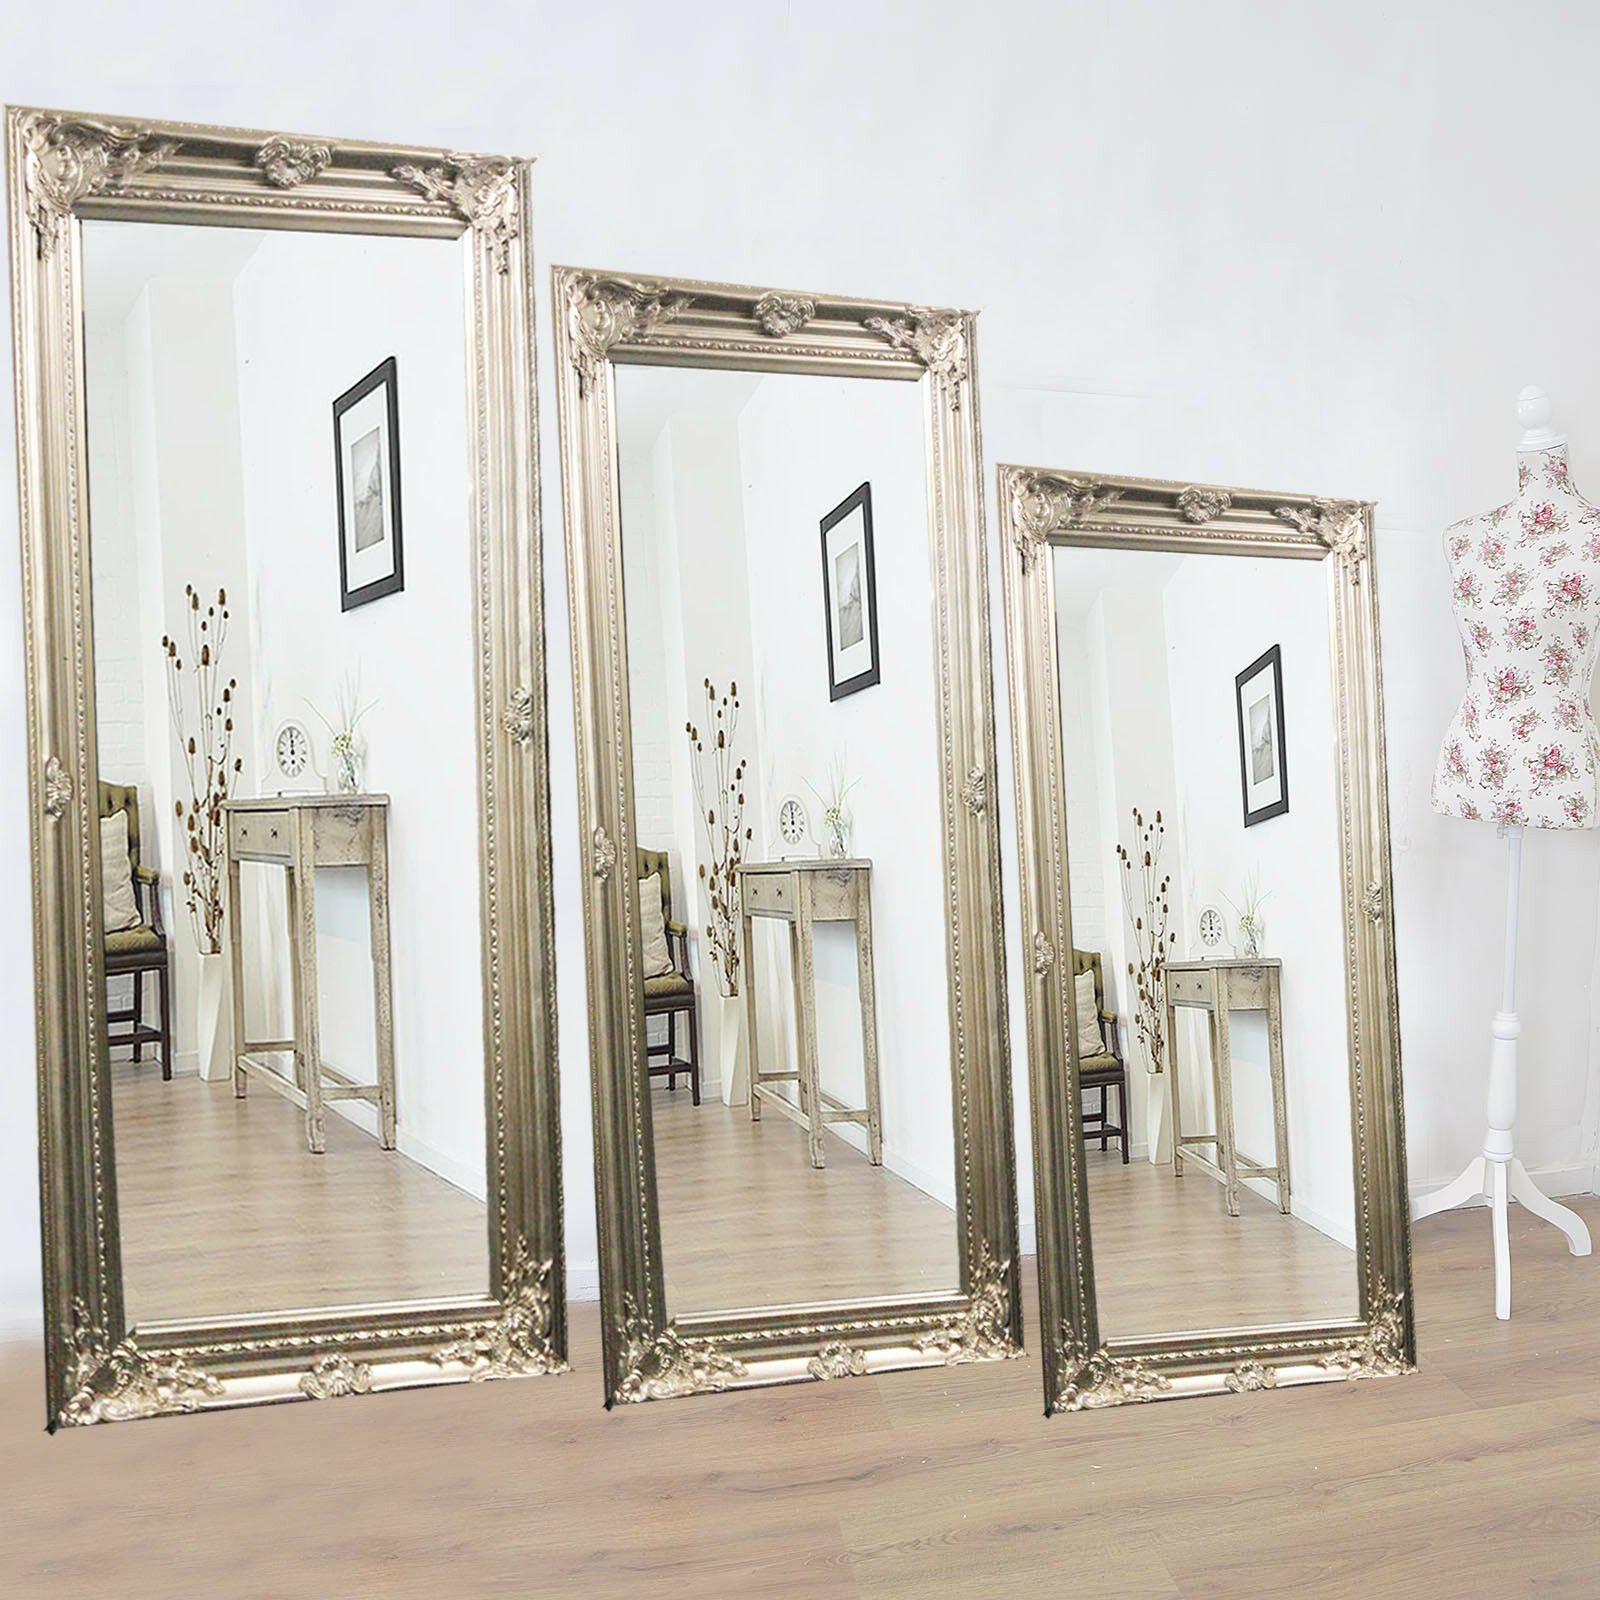 Modern Vintage French Style Length Floor Wall Shabby Chic Decor Mirror Antique For Sale Ebay